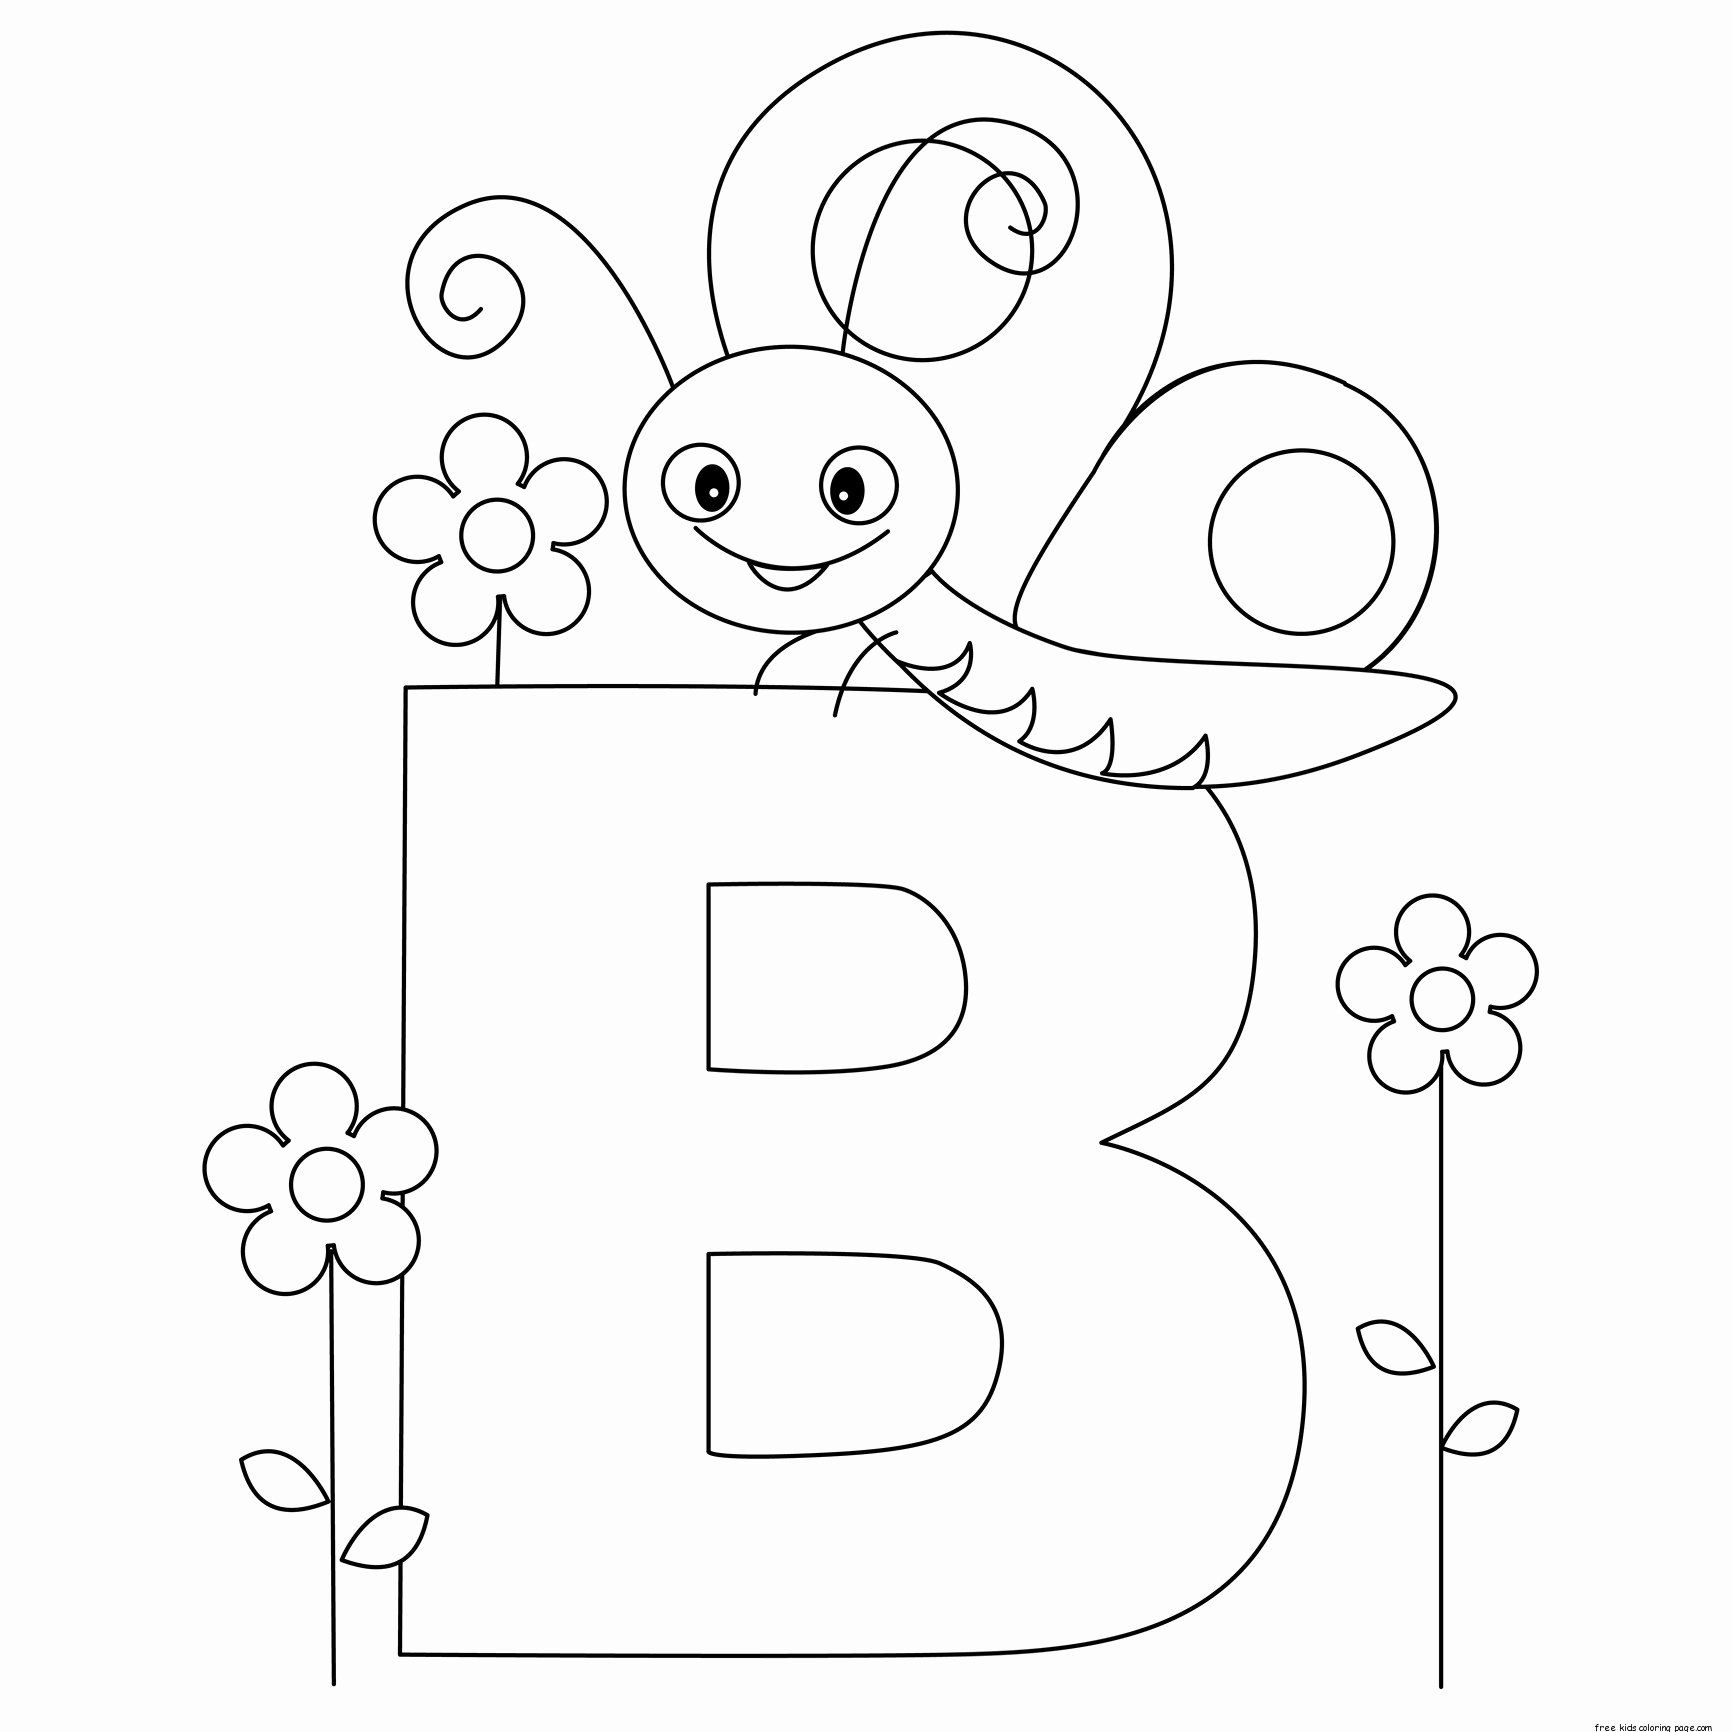 Free Printable Coloring Pages For Kids Alphabet Designs Collections